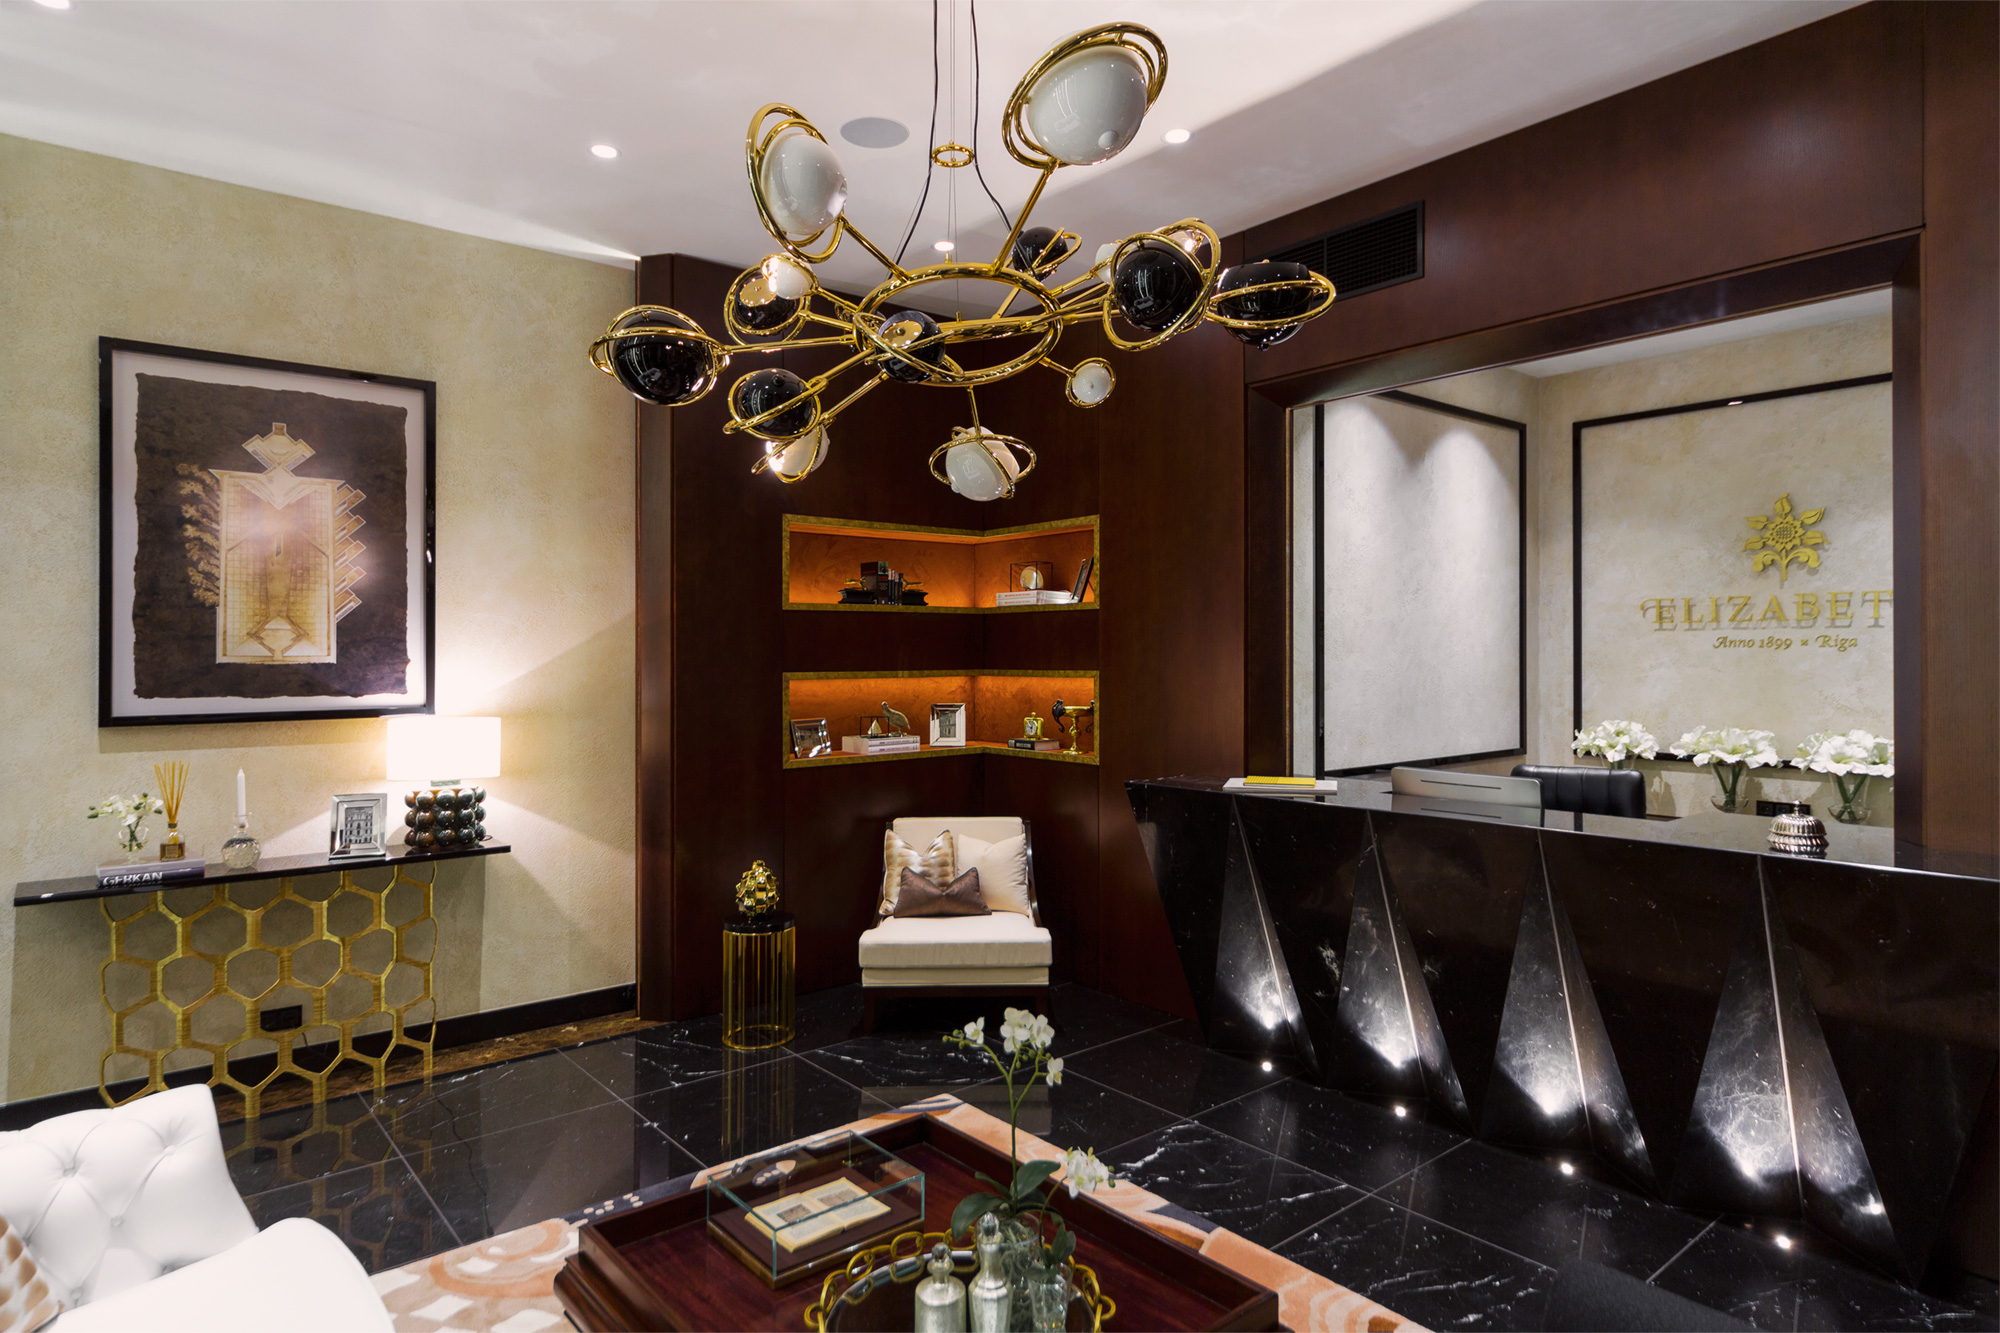 luxury living rooms pics asian design room ideas 6 with incredible lighting designs designselizabeth 2